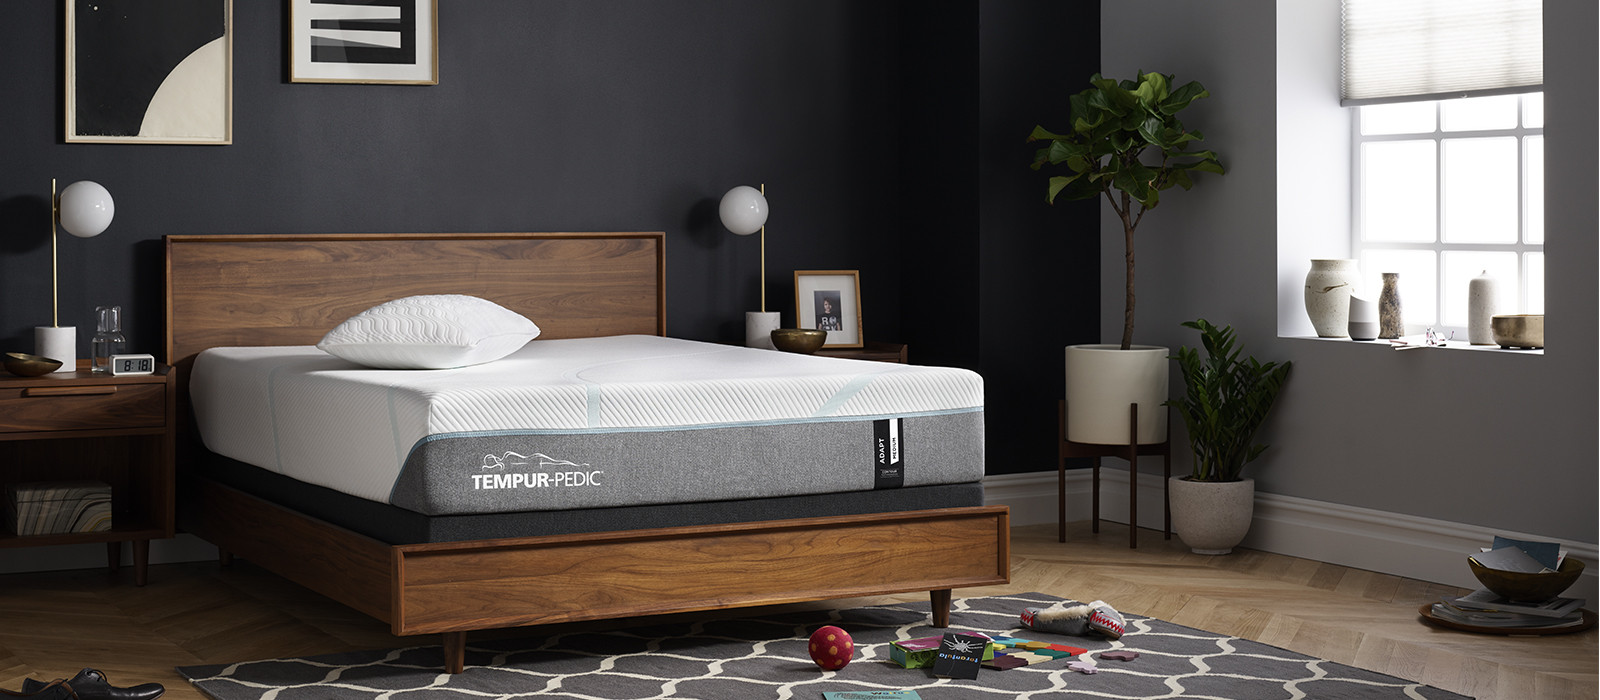 Tempurpedic Mattress Reviews >> TEMPUR-Adapt® | Tempur-Pedic